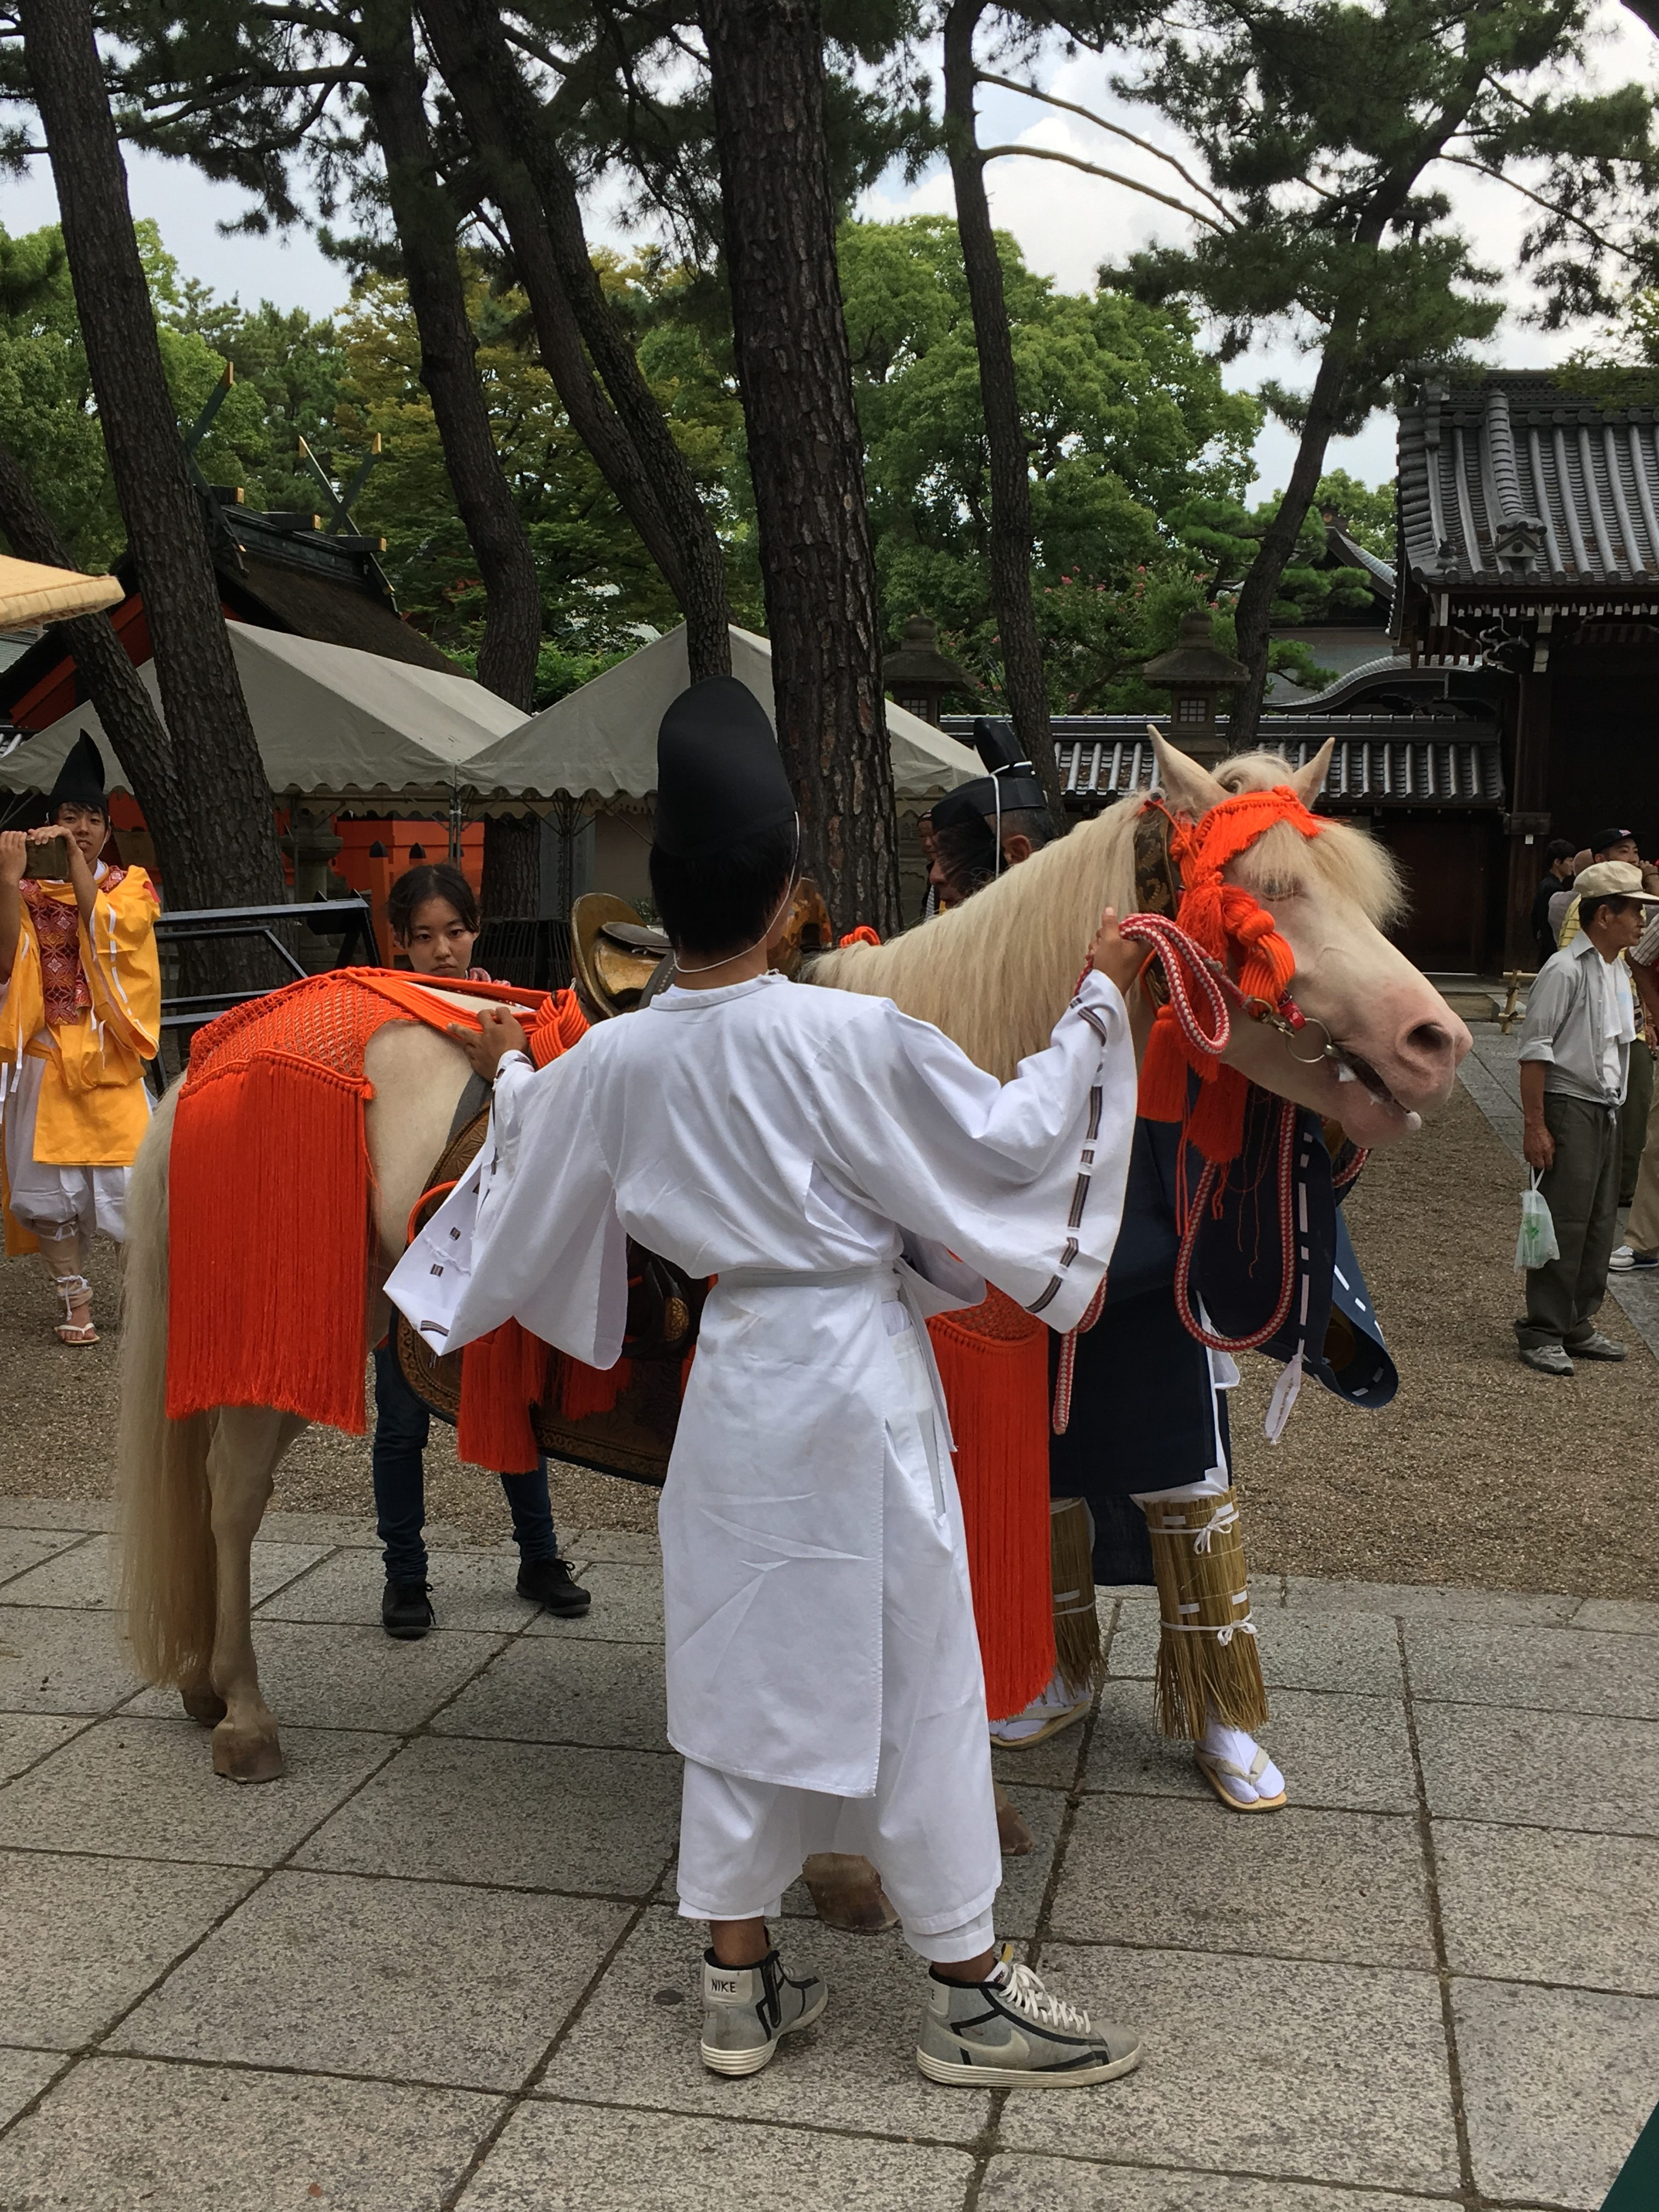 white horse shroud in orange attire being steadied by shinto priest